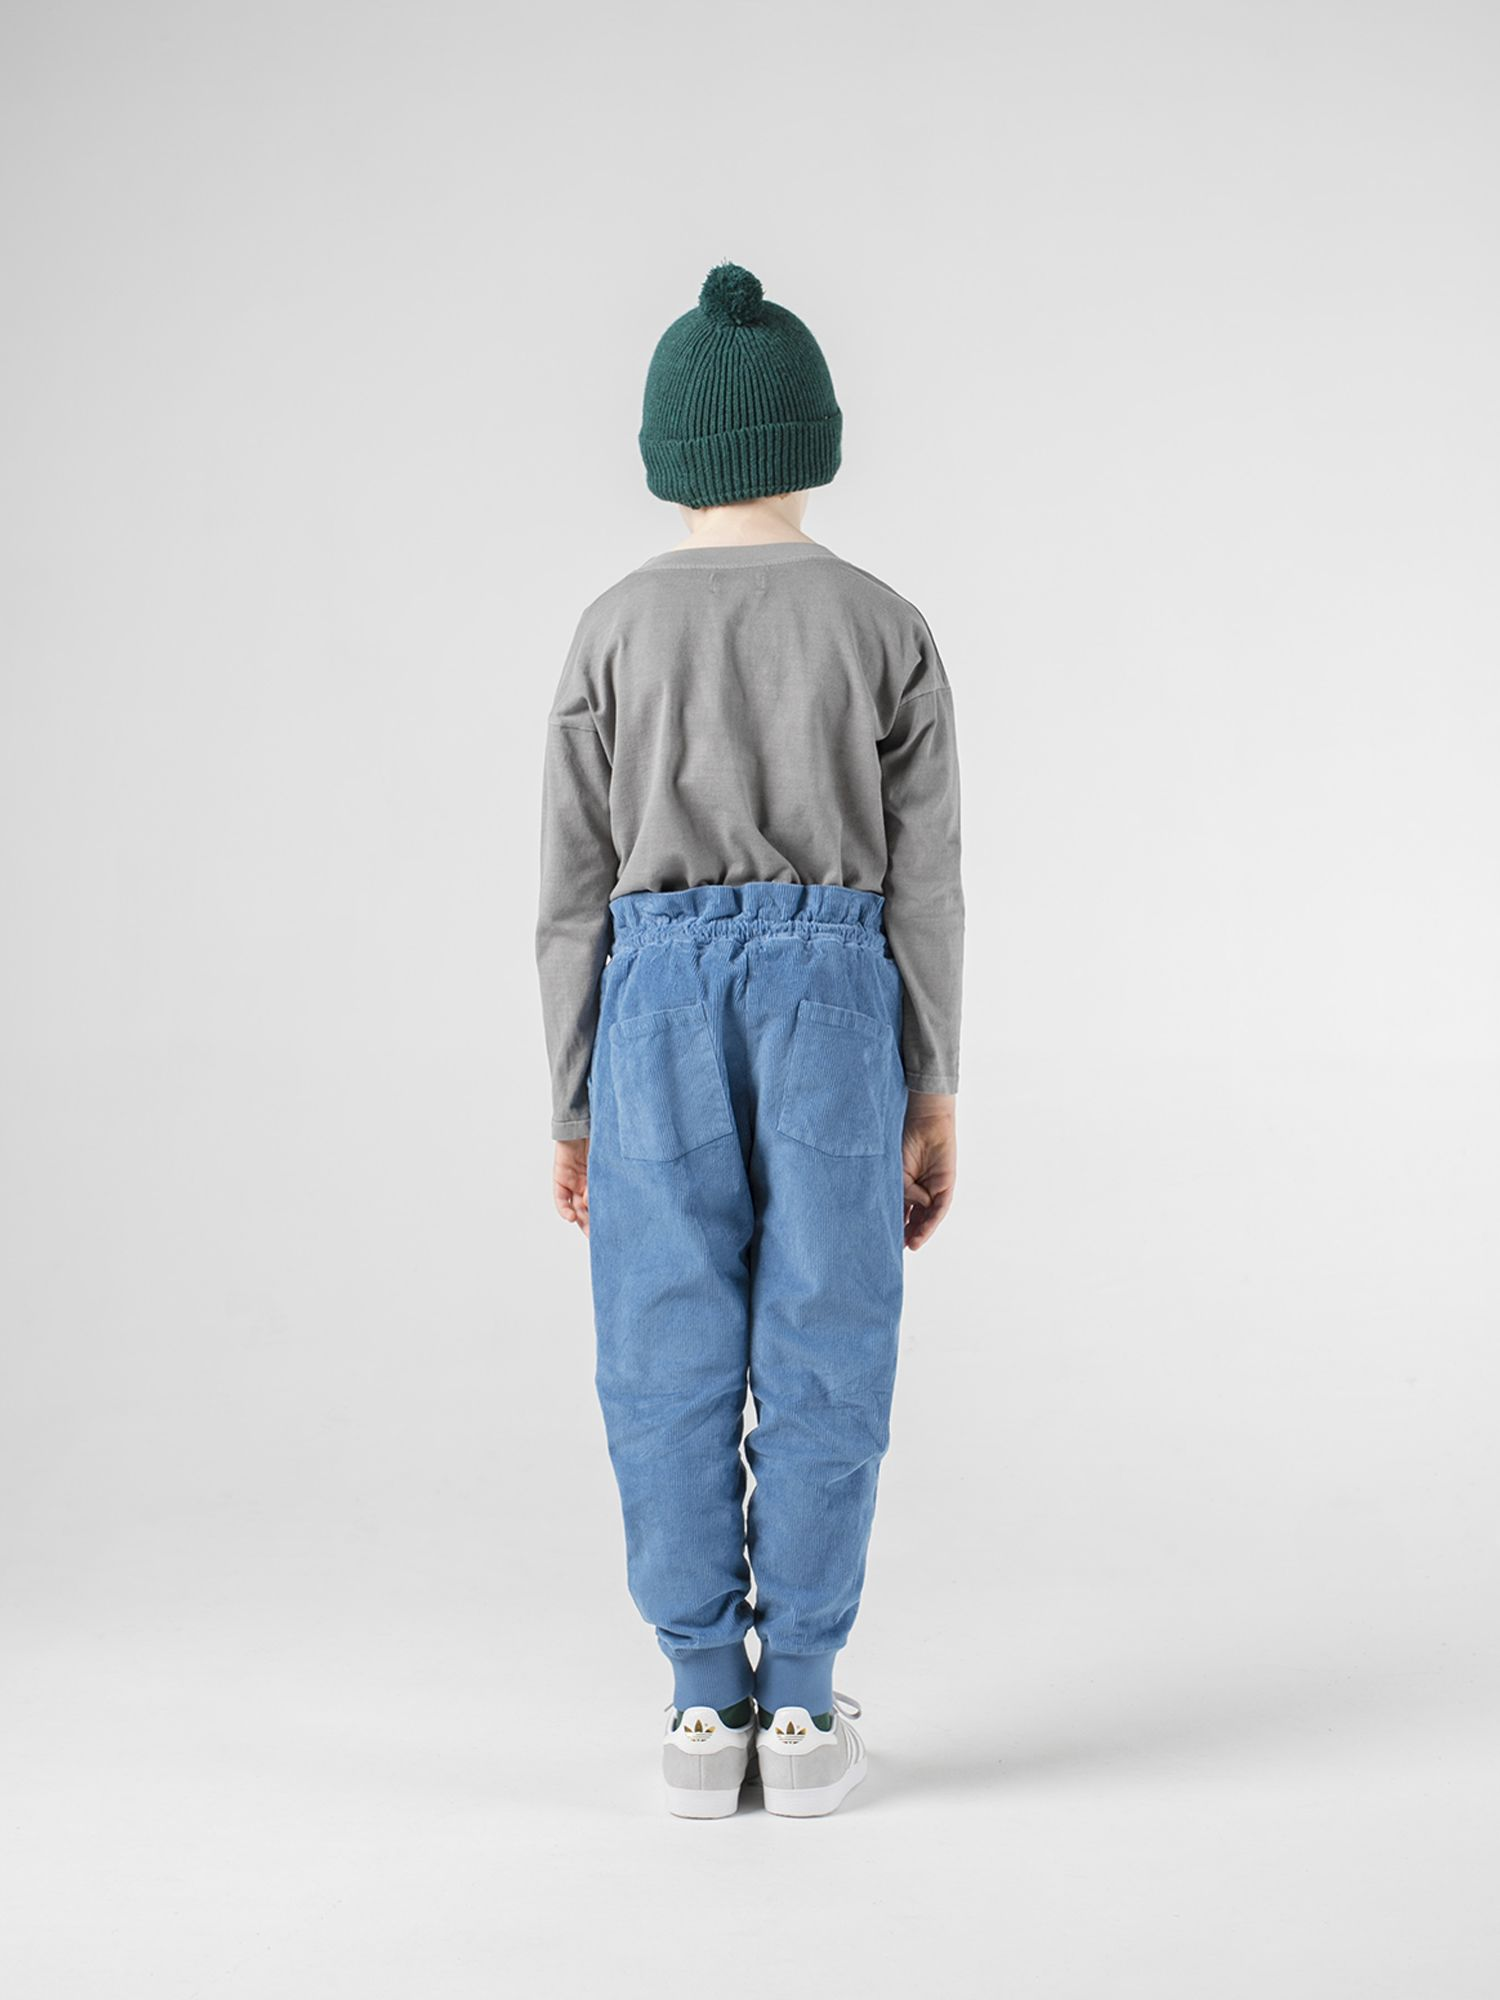 Flag Baggy Pants Kid Look